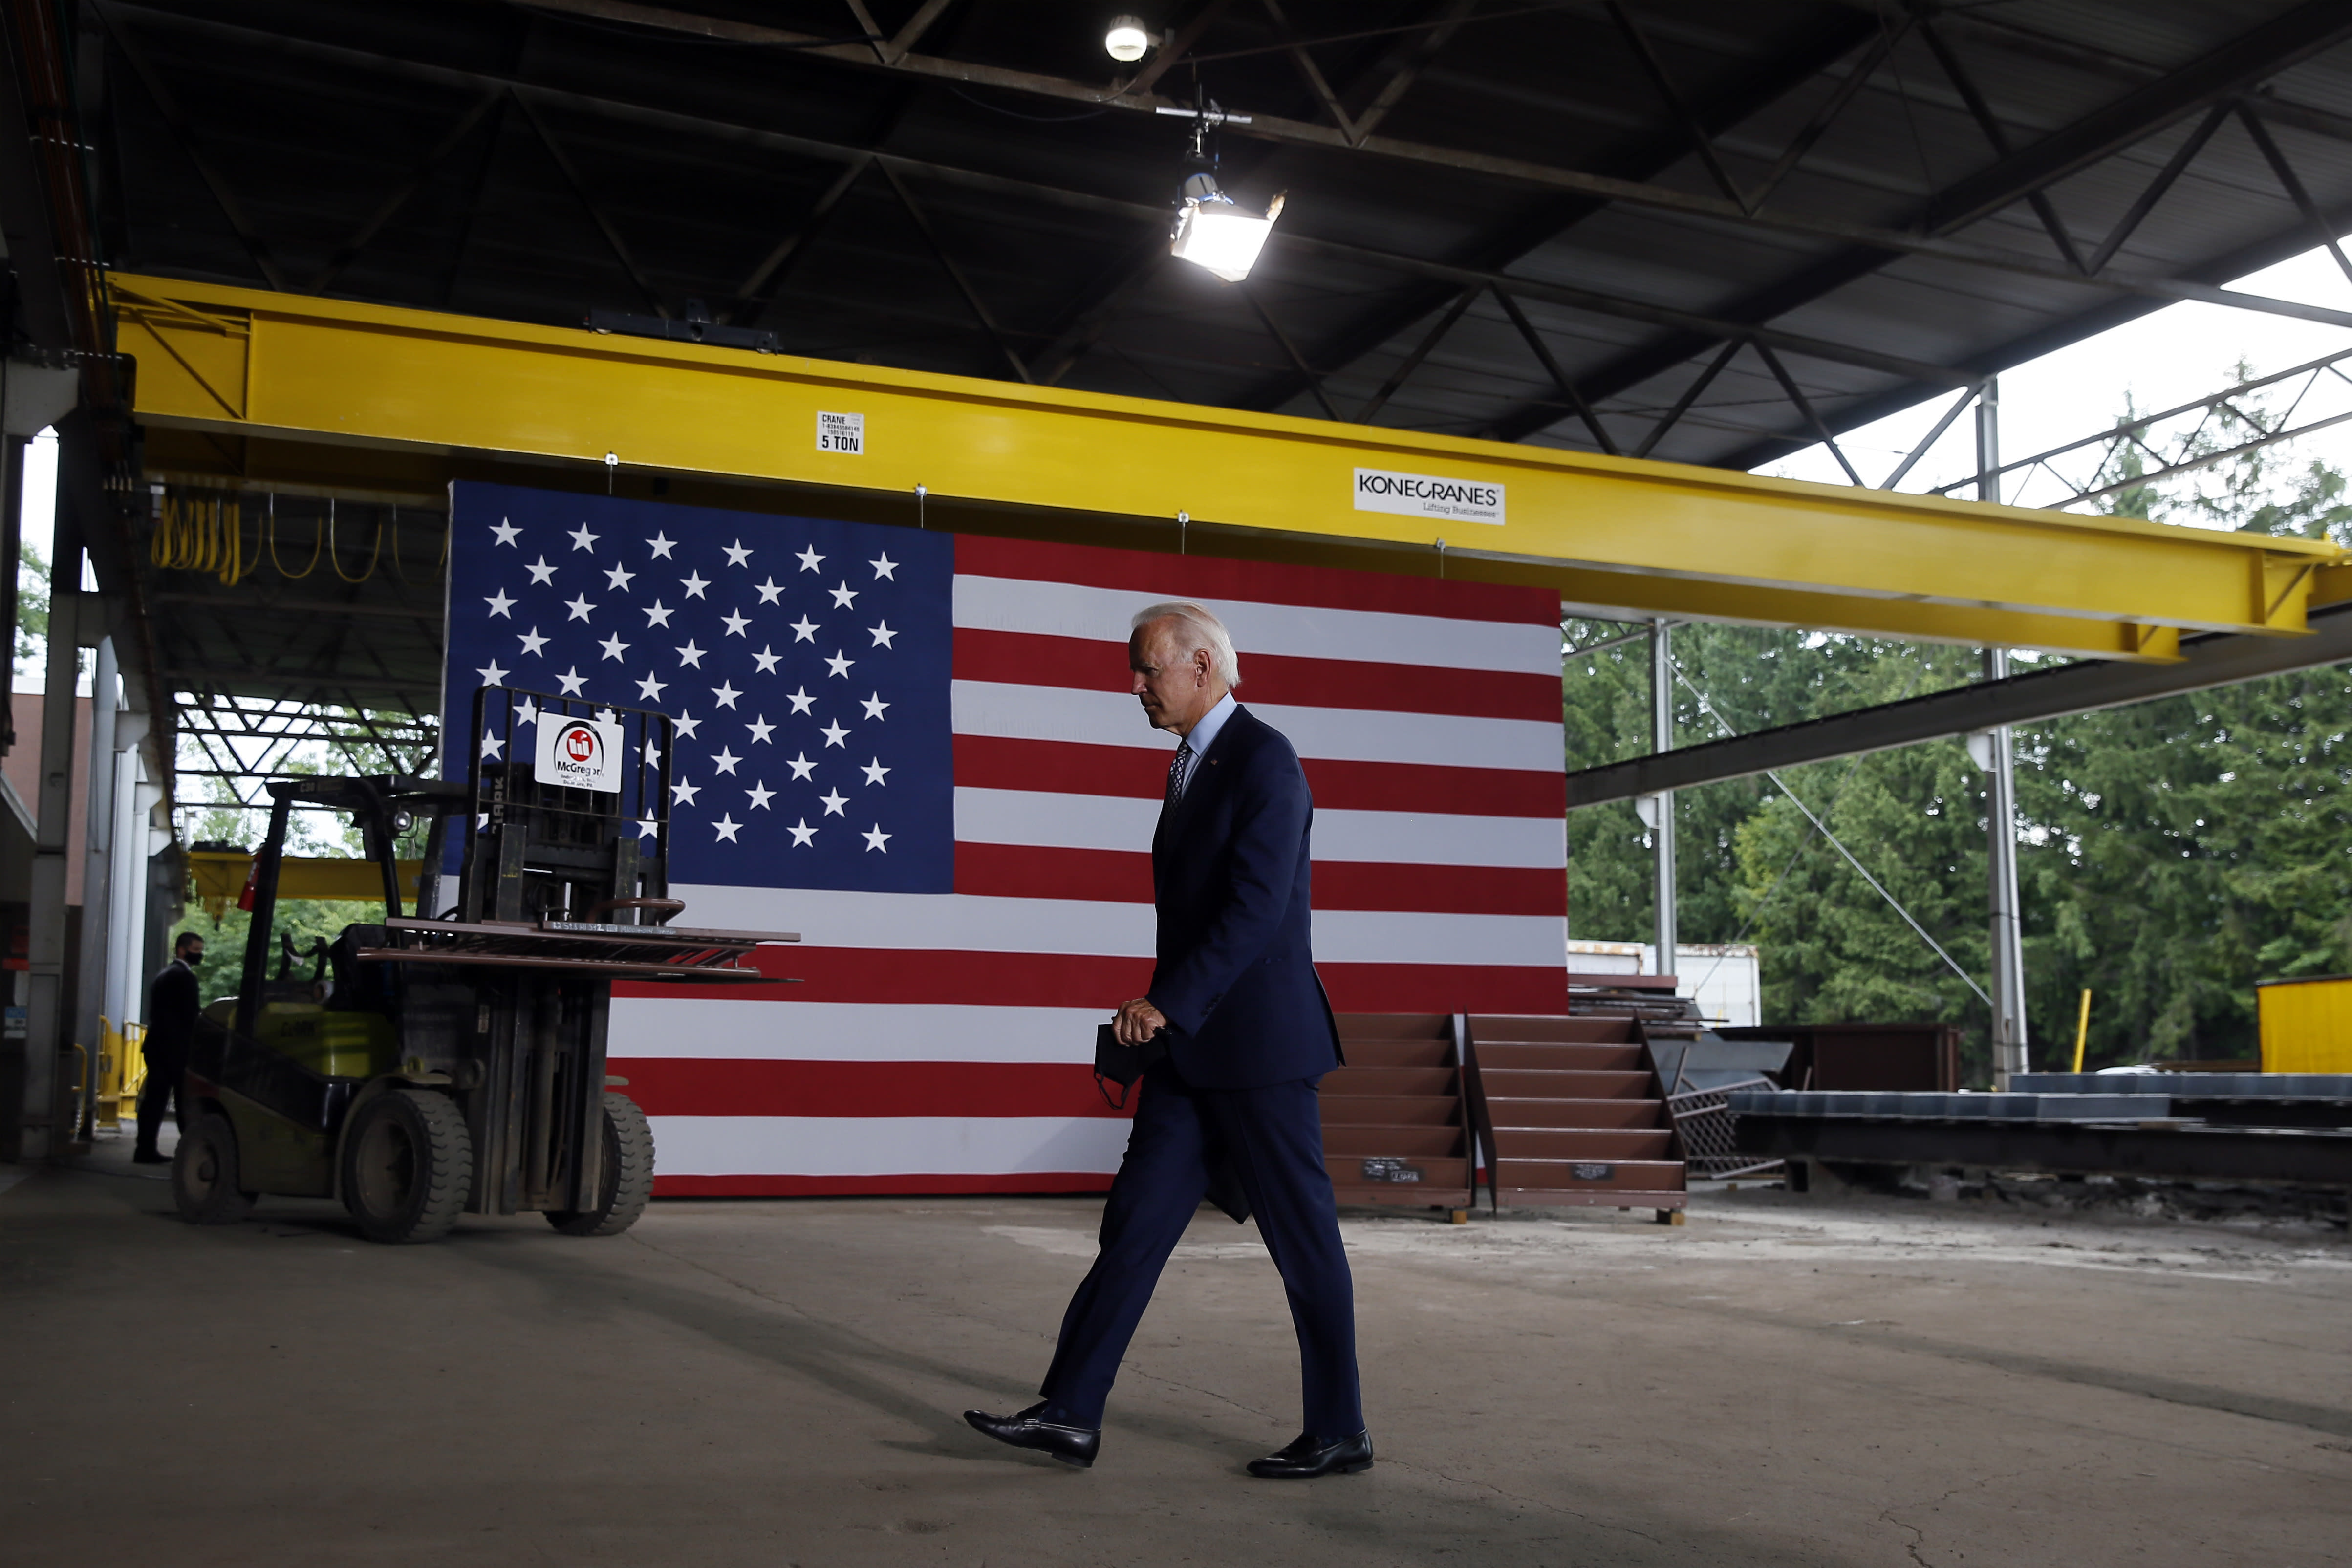 FILE - In this July 9, 2020, file photo Democratic presidential candidate former Vice President Joe Biden walks from the podium after speaking at McGregor Industries in Dunmore, Pa. Biden is pledging to define his presidency by a sweeping economic agenda beyond anything Americans have seen since the Great Depression and the industrial mobilization for World War II. (AP Photo/Matt Slocum, File)